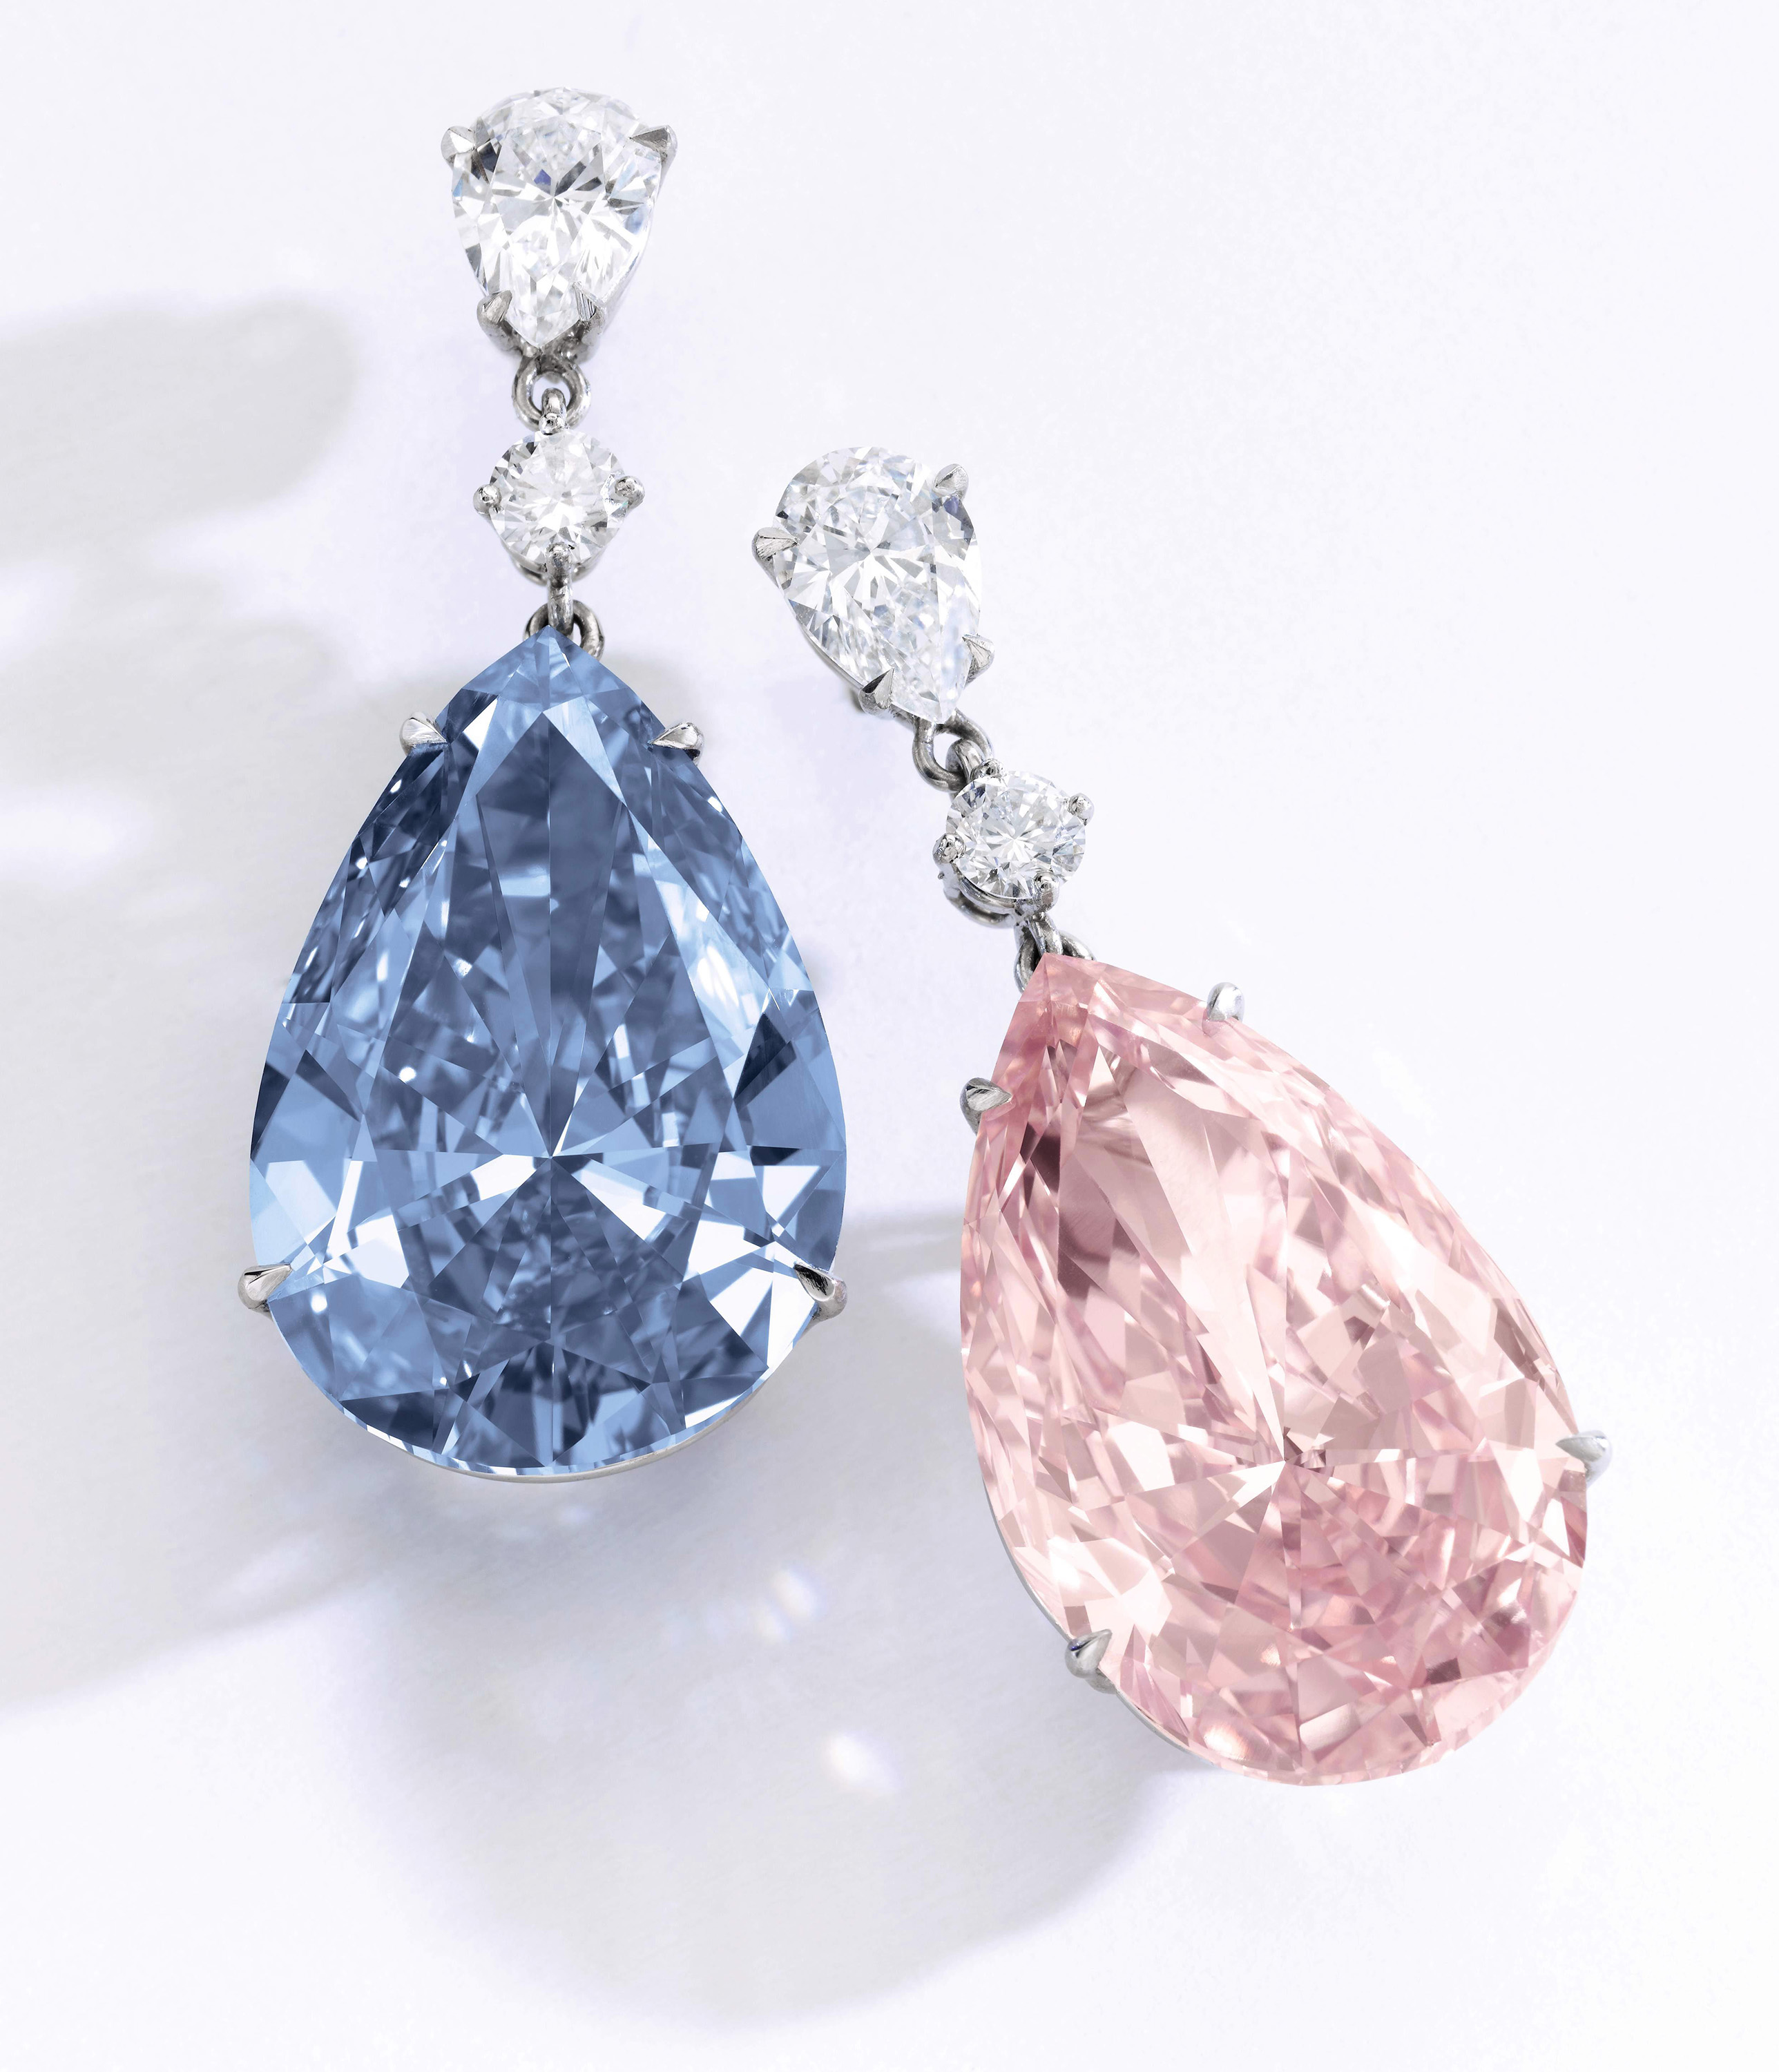 south jewelry picks kensington gemologue christie oppenheimer diamond auction christies designers top s img